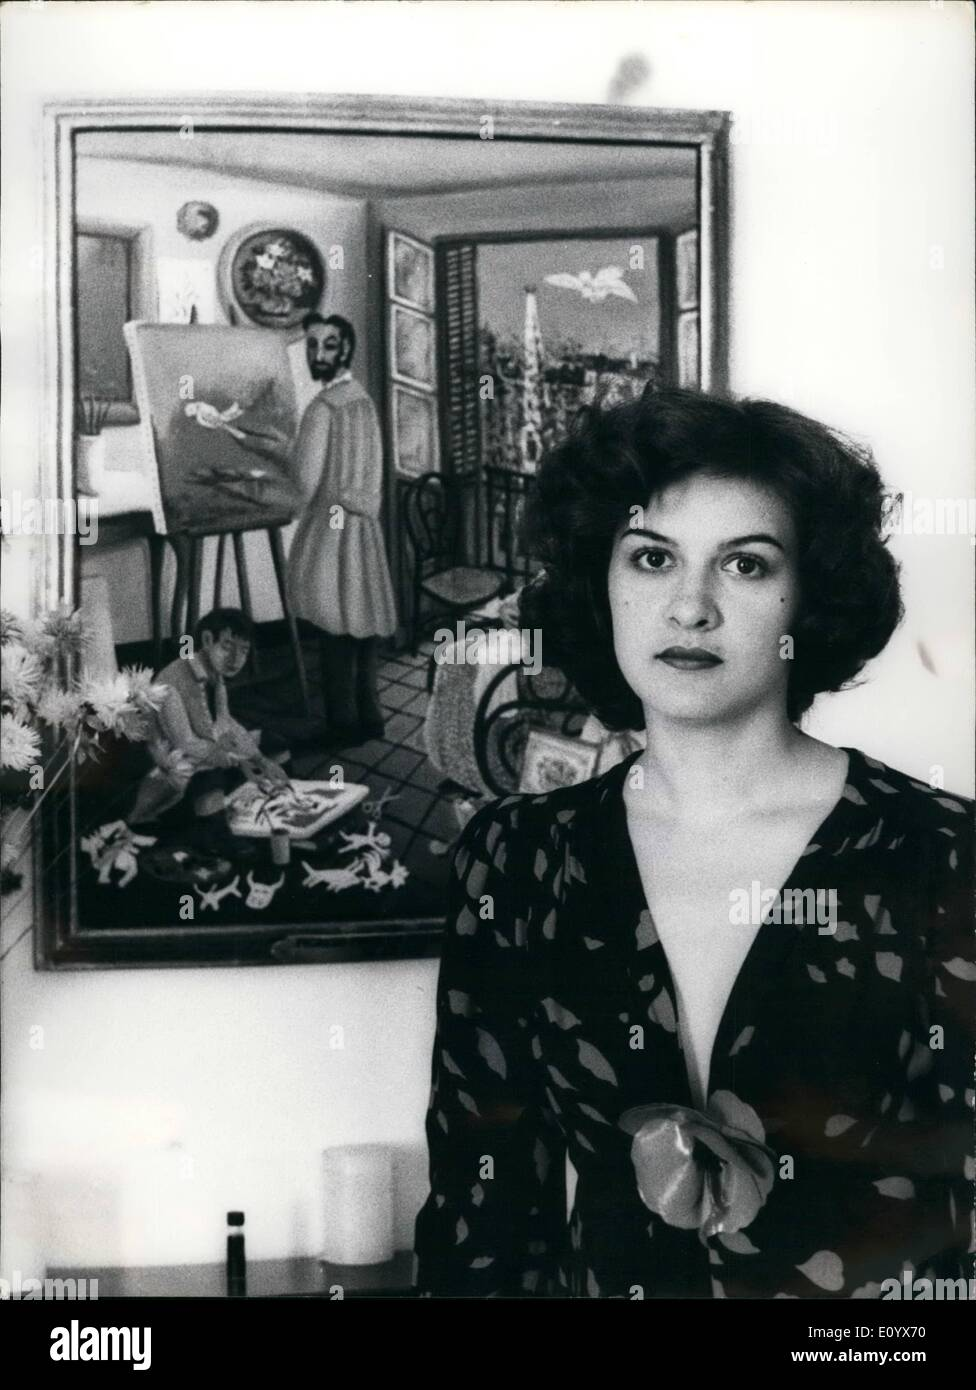 Paloma Picasso Sep 09 1971 Paloma Picasso Daughter Of Picasso Stock Photo